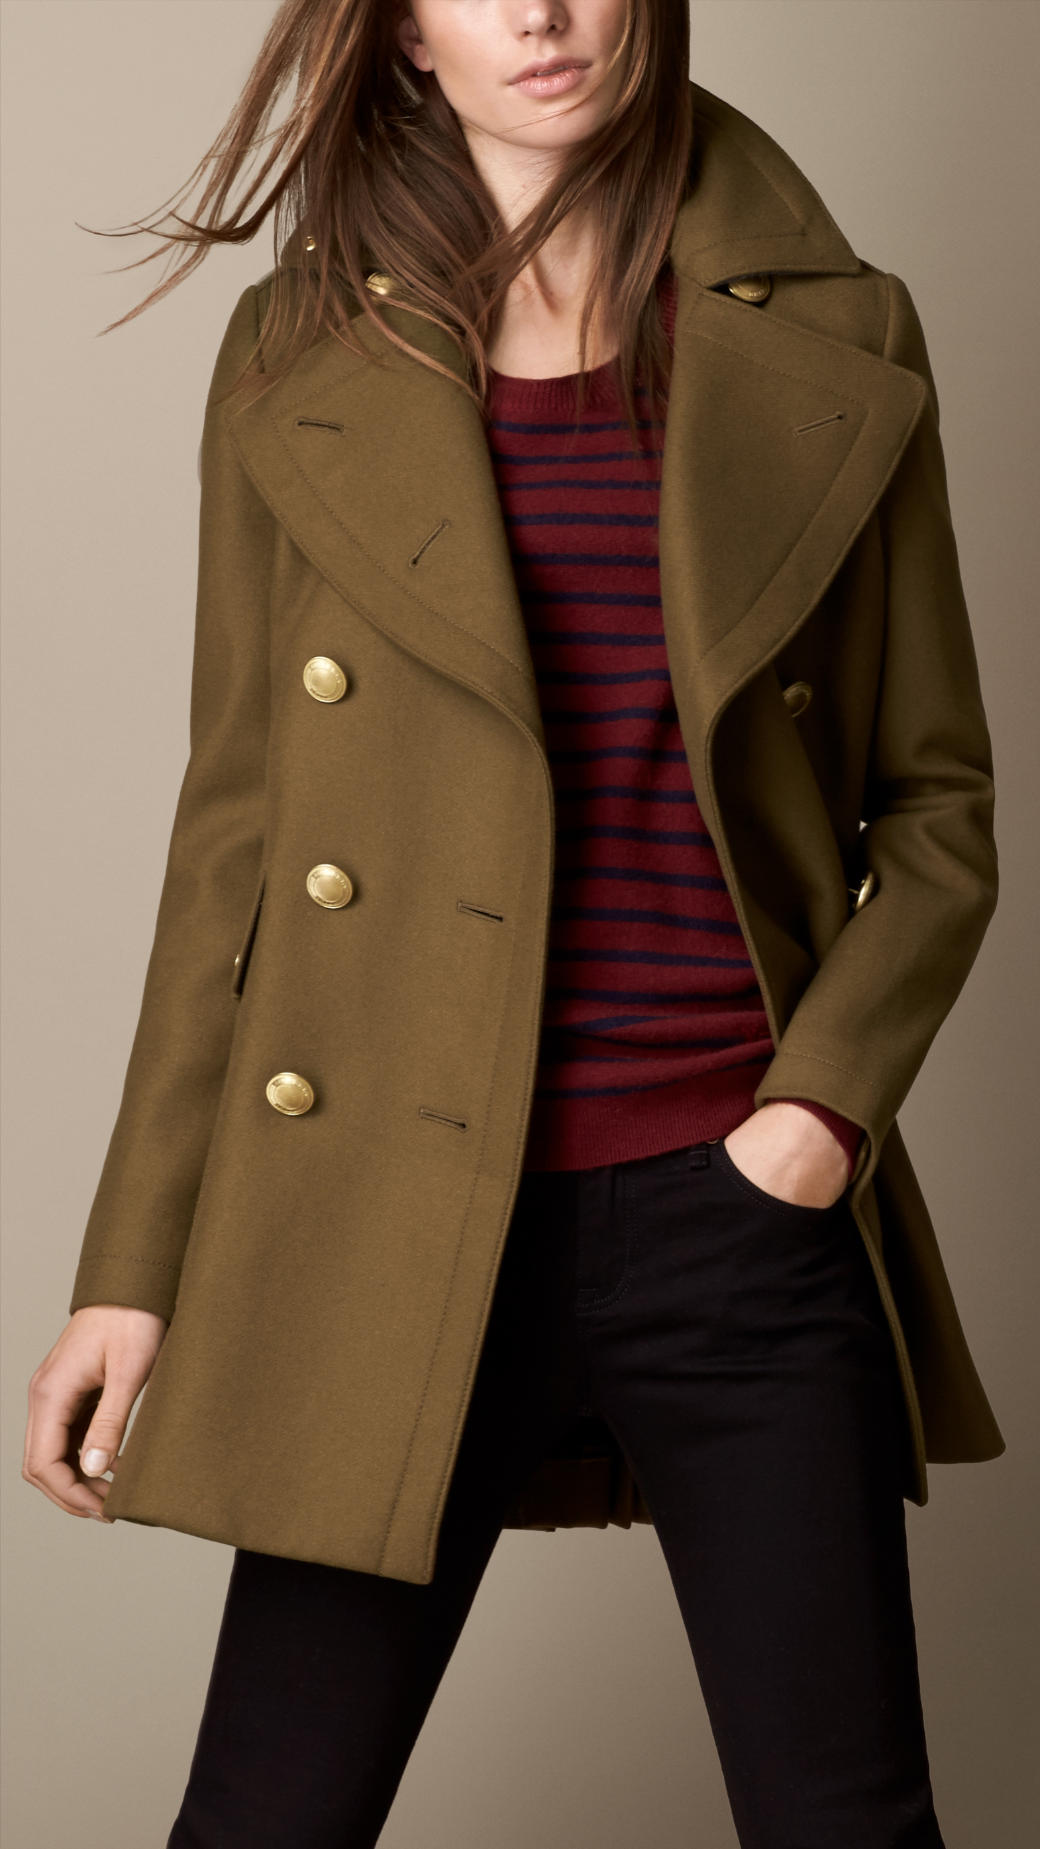 Burberry Oversize Felted Wool Coat in Natural | Lyst